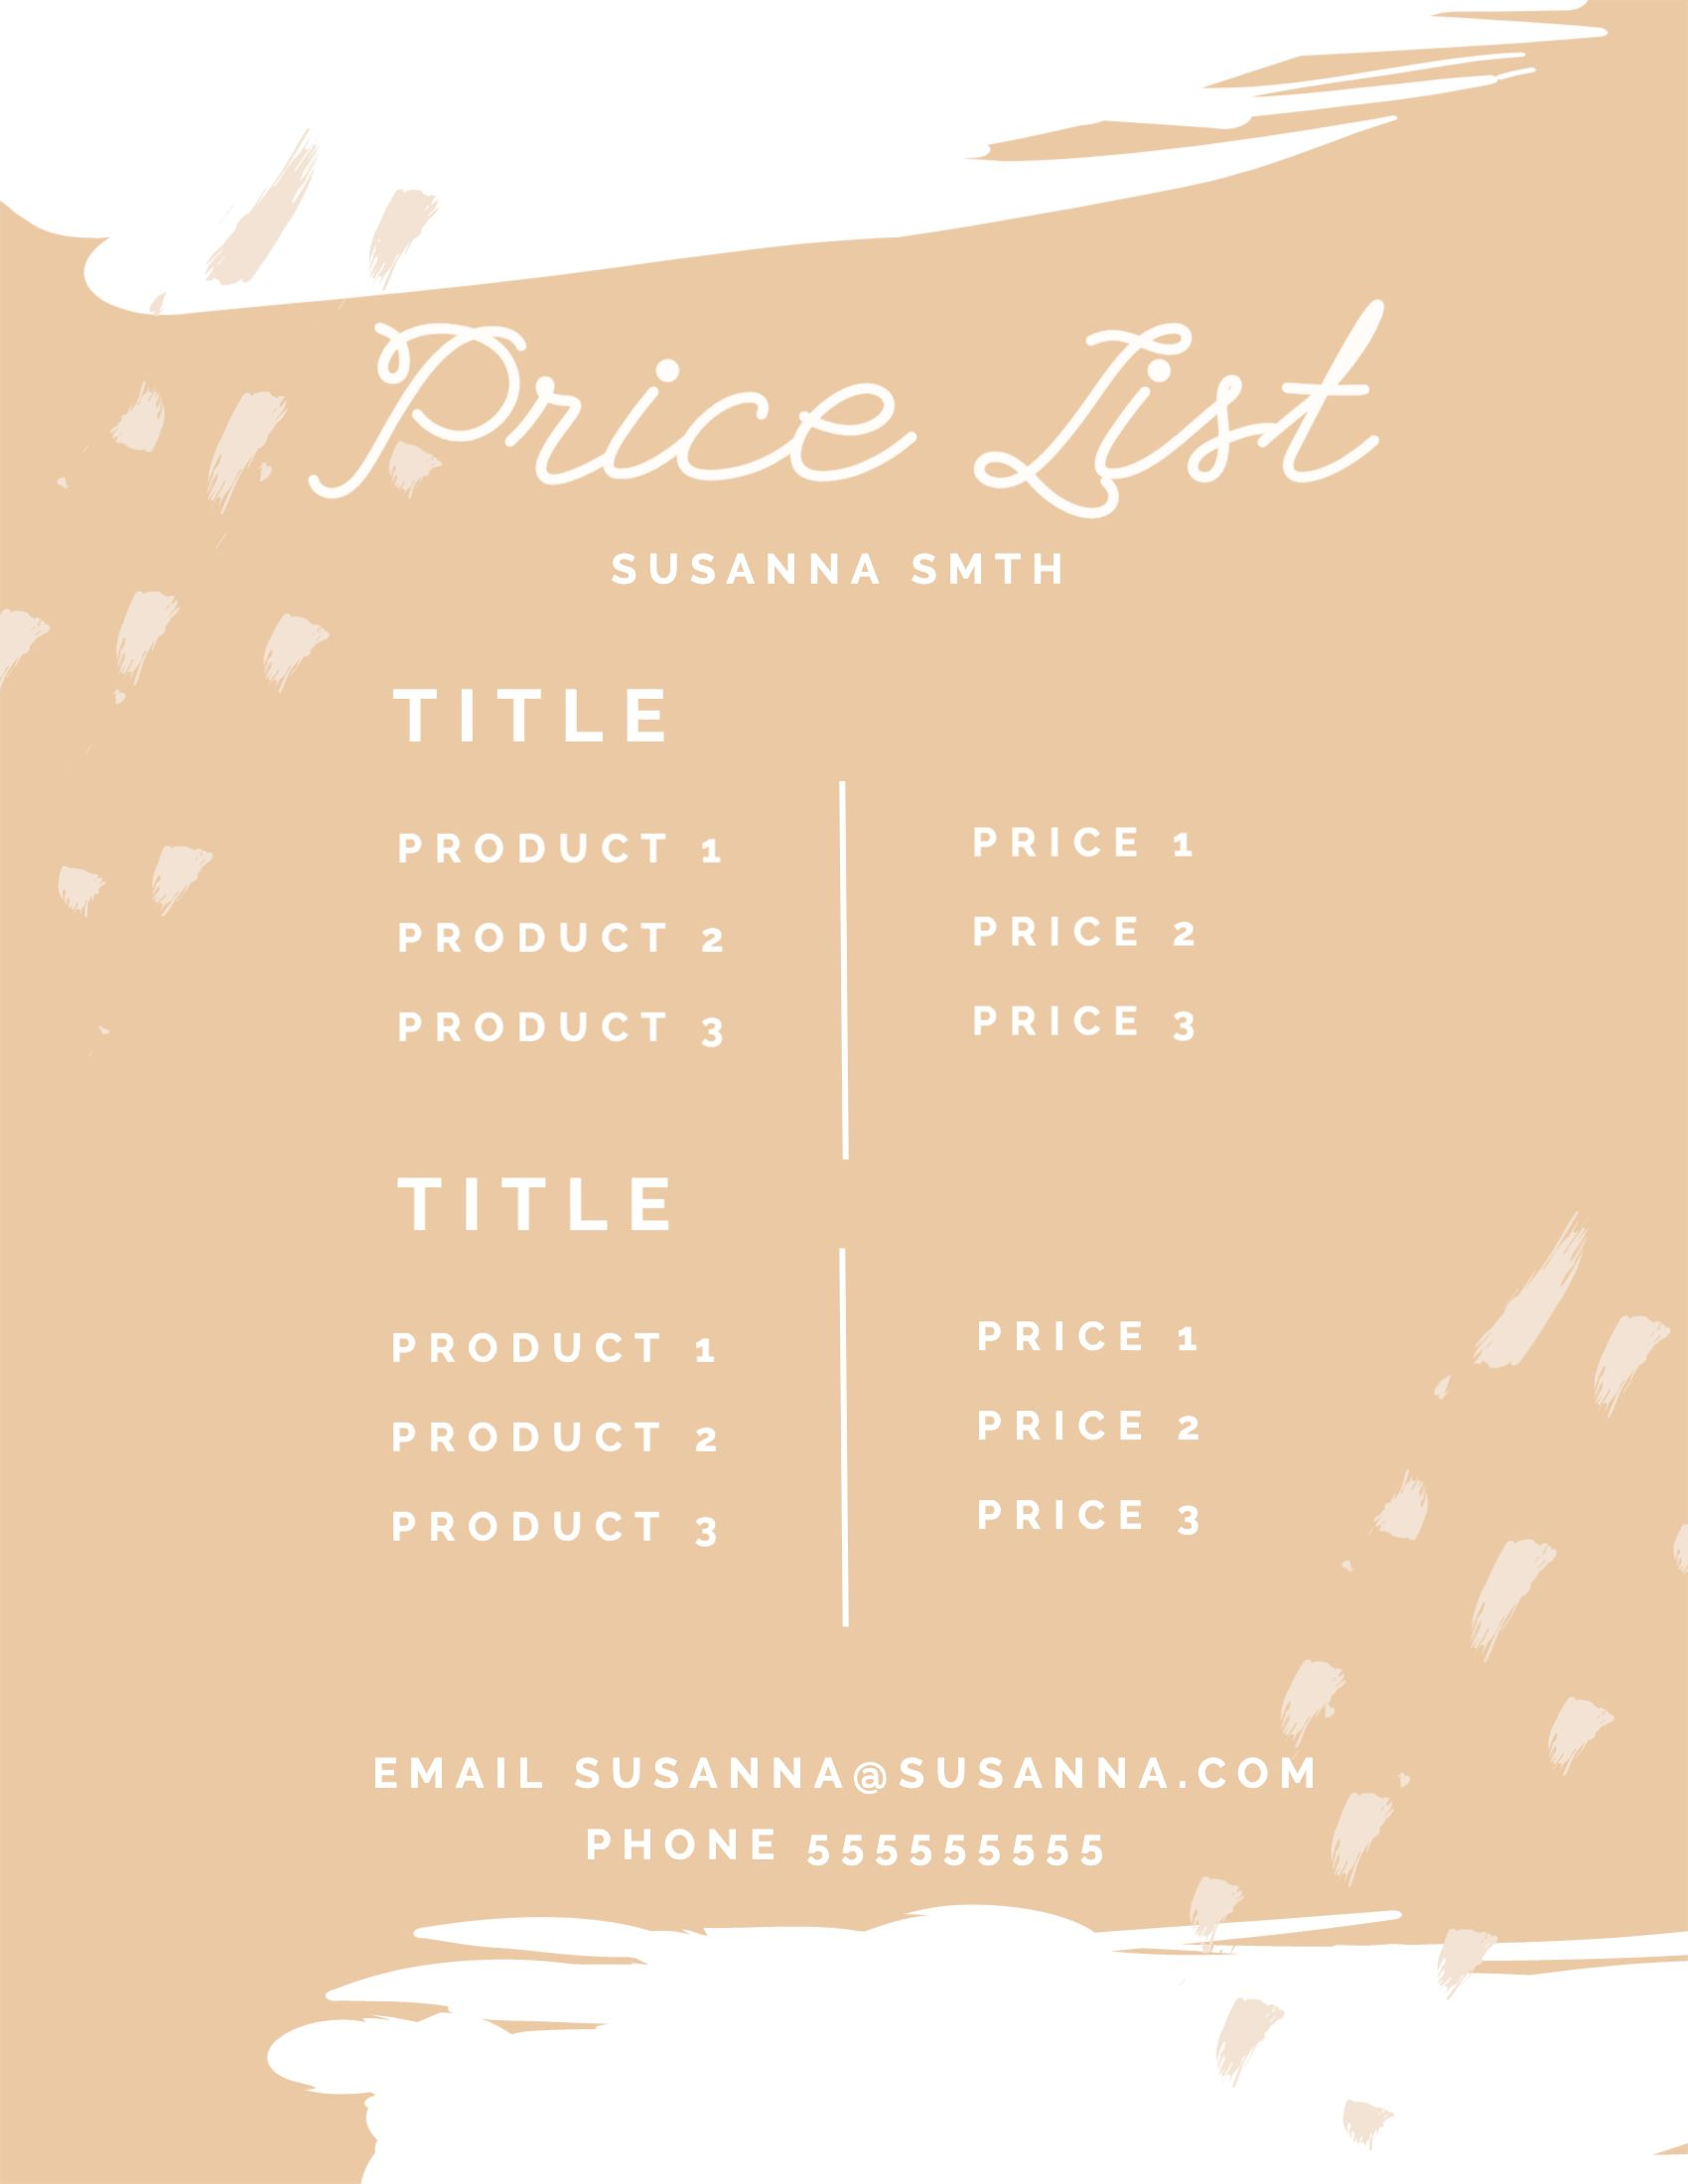 A template is something that establishes or serves as a pattern for reference. Price List Mockup Generator